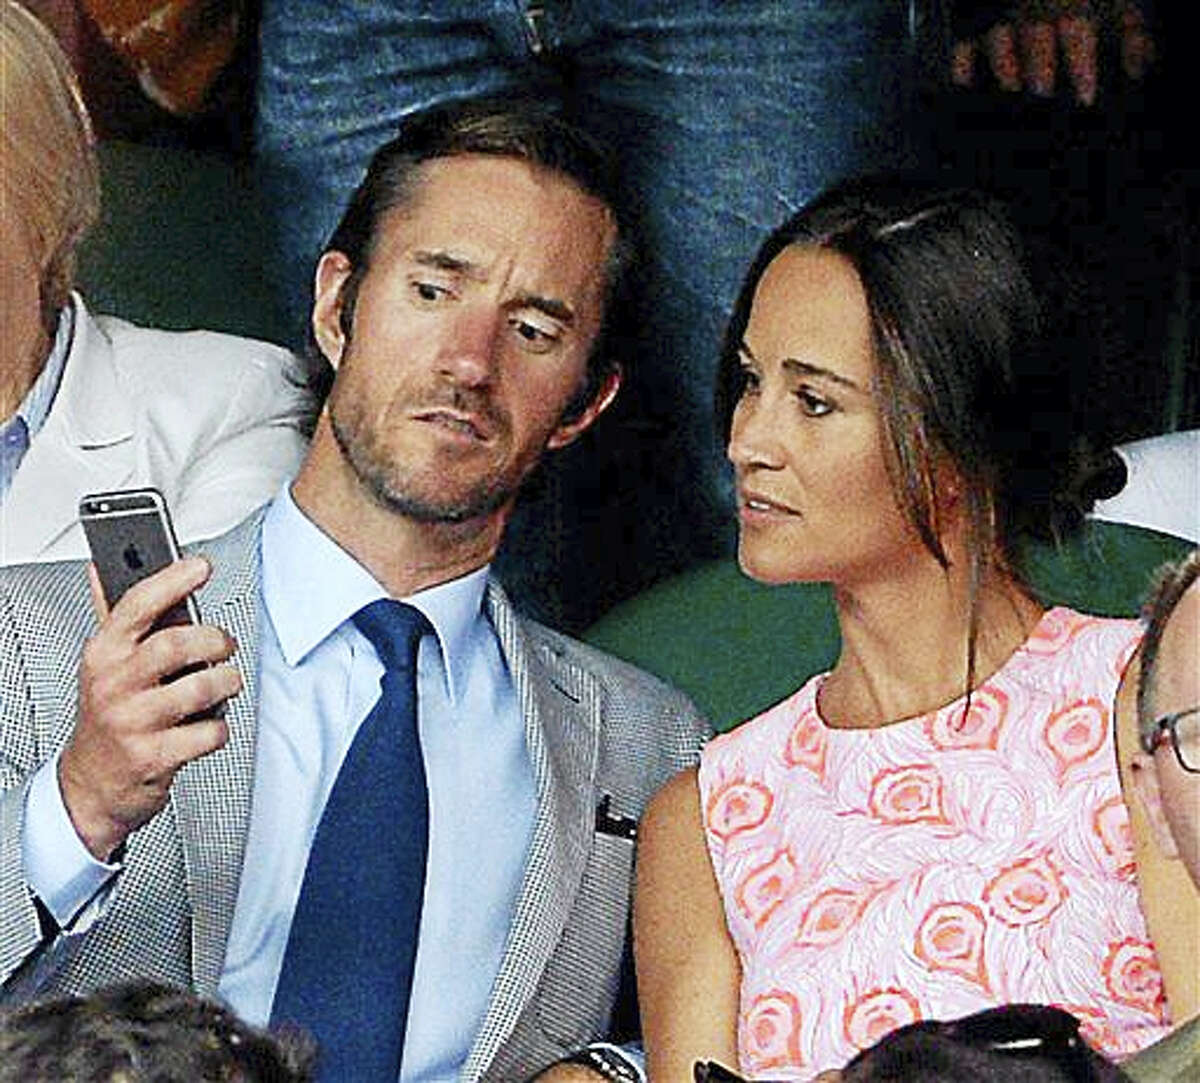 This is a July 6, 2016, file photo of Pippa Middleton and James Matthews on day nine of the Wimbledon Championships at the All England Lawn Tennis and Croquet Club, Wimbledon London. Pippa Middleton and fund manager James Matthews on Tuesday July 19, 2016 announced their engagement.